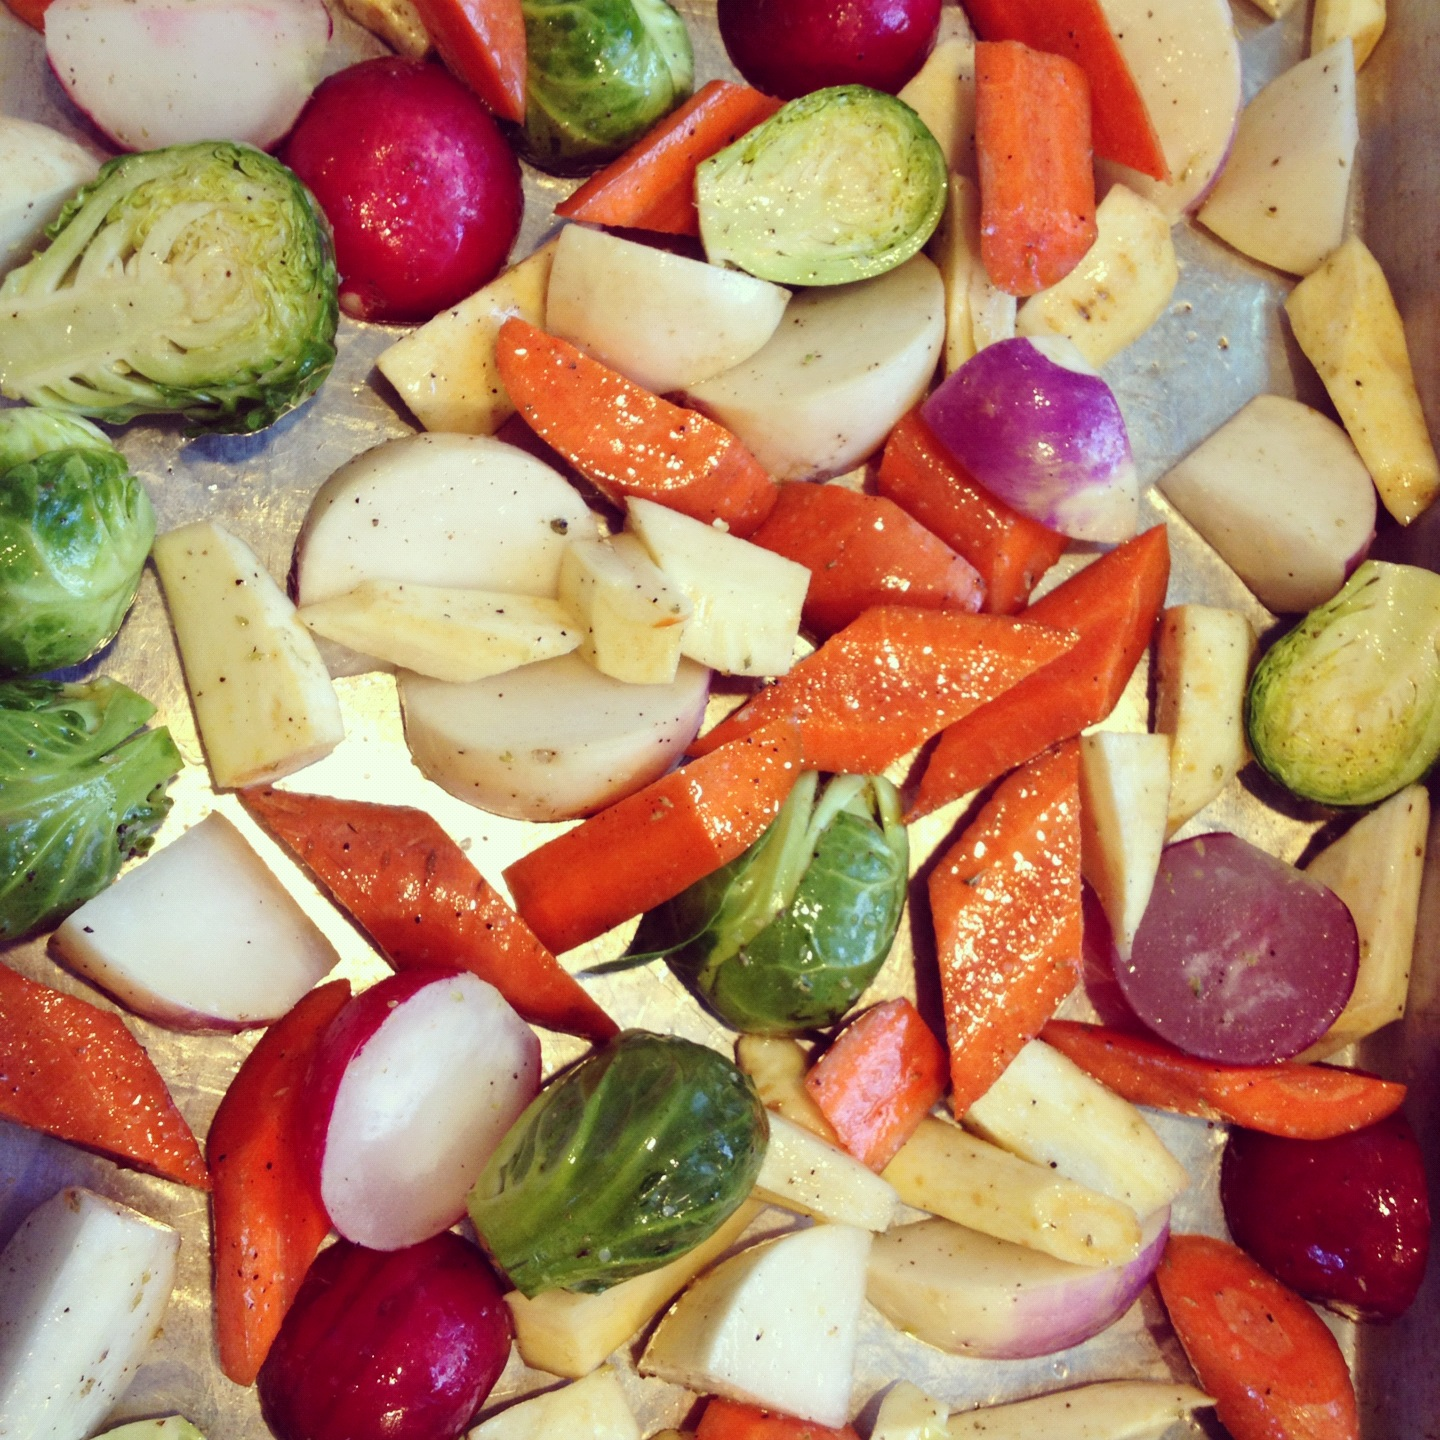 roasted winter and root vegetables | Adventures of Cecelia Bedelia